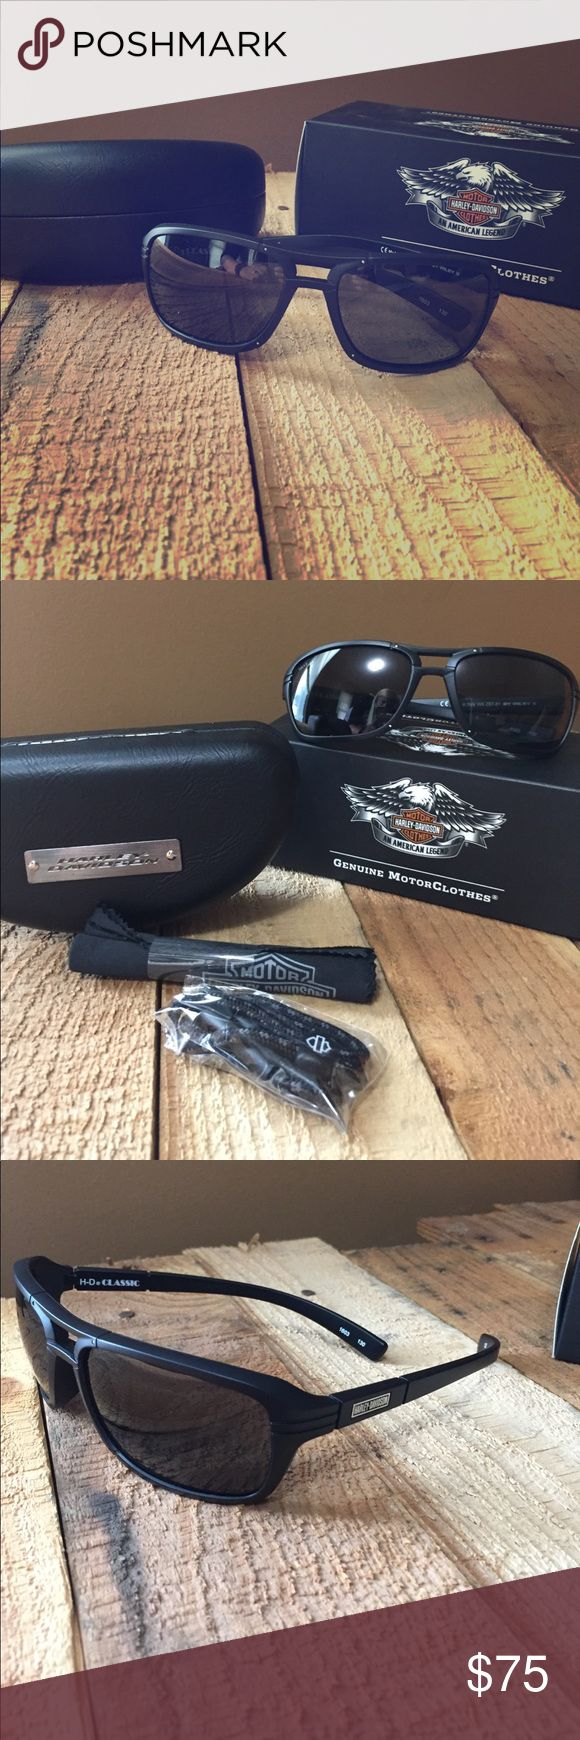 Harley Davidson Classic Sunglasses New with box, wileyx brand Harley Davidson sunglasses. Comes with leather hard case, cleaning wipe, and leash cord. Style is HRCLA40. Green lens/matte black frame but lens is still dark and not bright green as seen in pictures. Only worn once and didn't like style on my face. Harley-Davidson Accessories Sunglasses